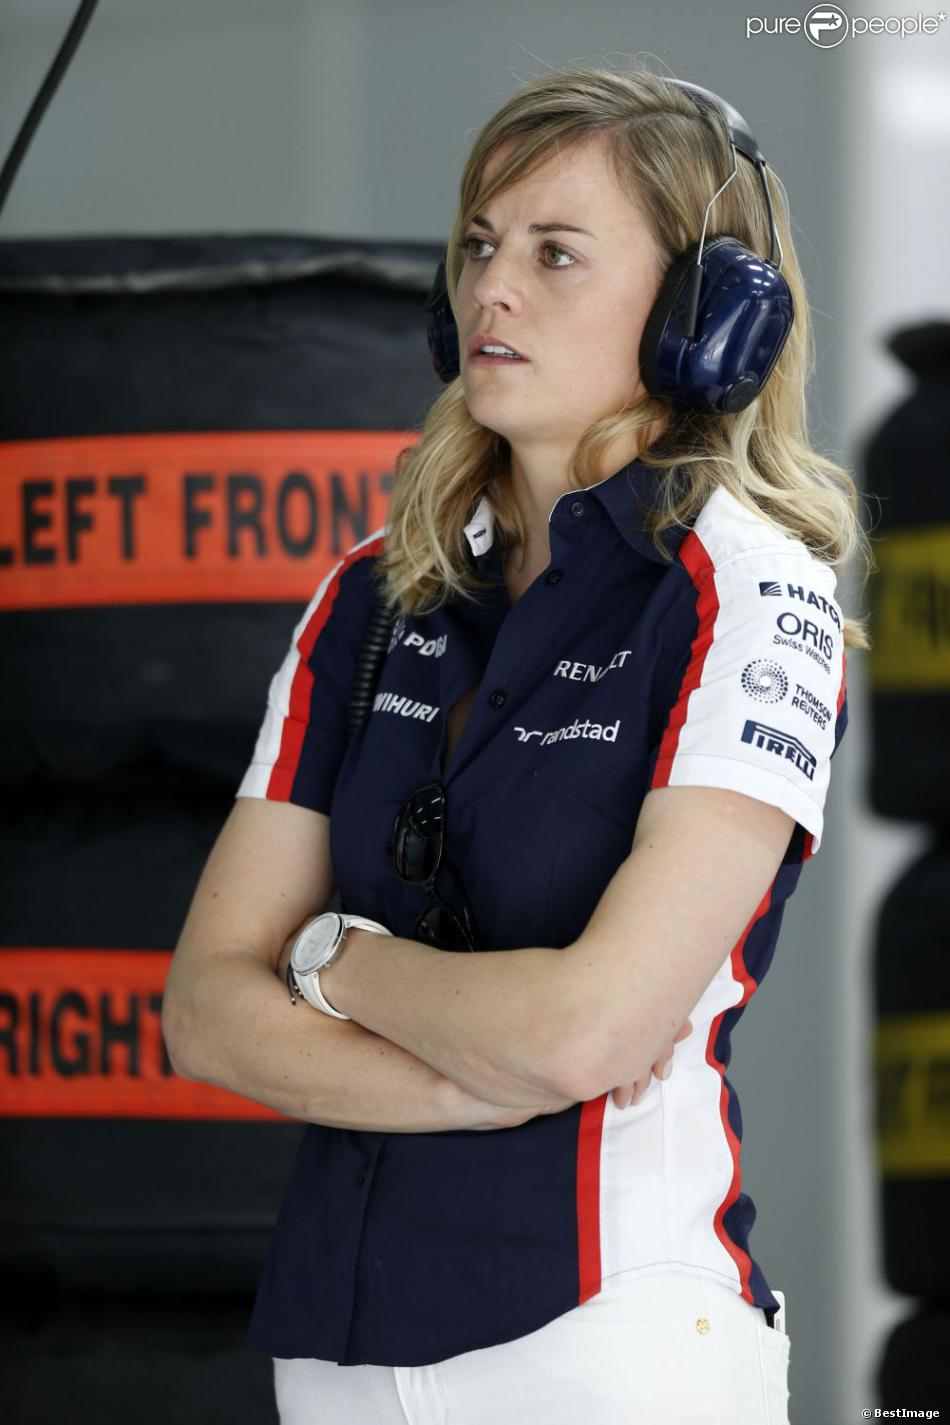 susie wolff claire williams ces femmes qui bousculent le petit monde de la f1 purepeople. Black Bedroom Furniture Sets. Home Design Ideas